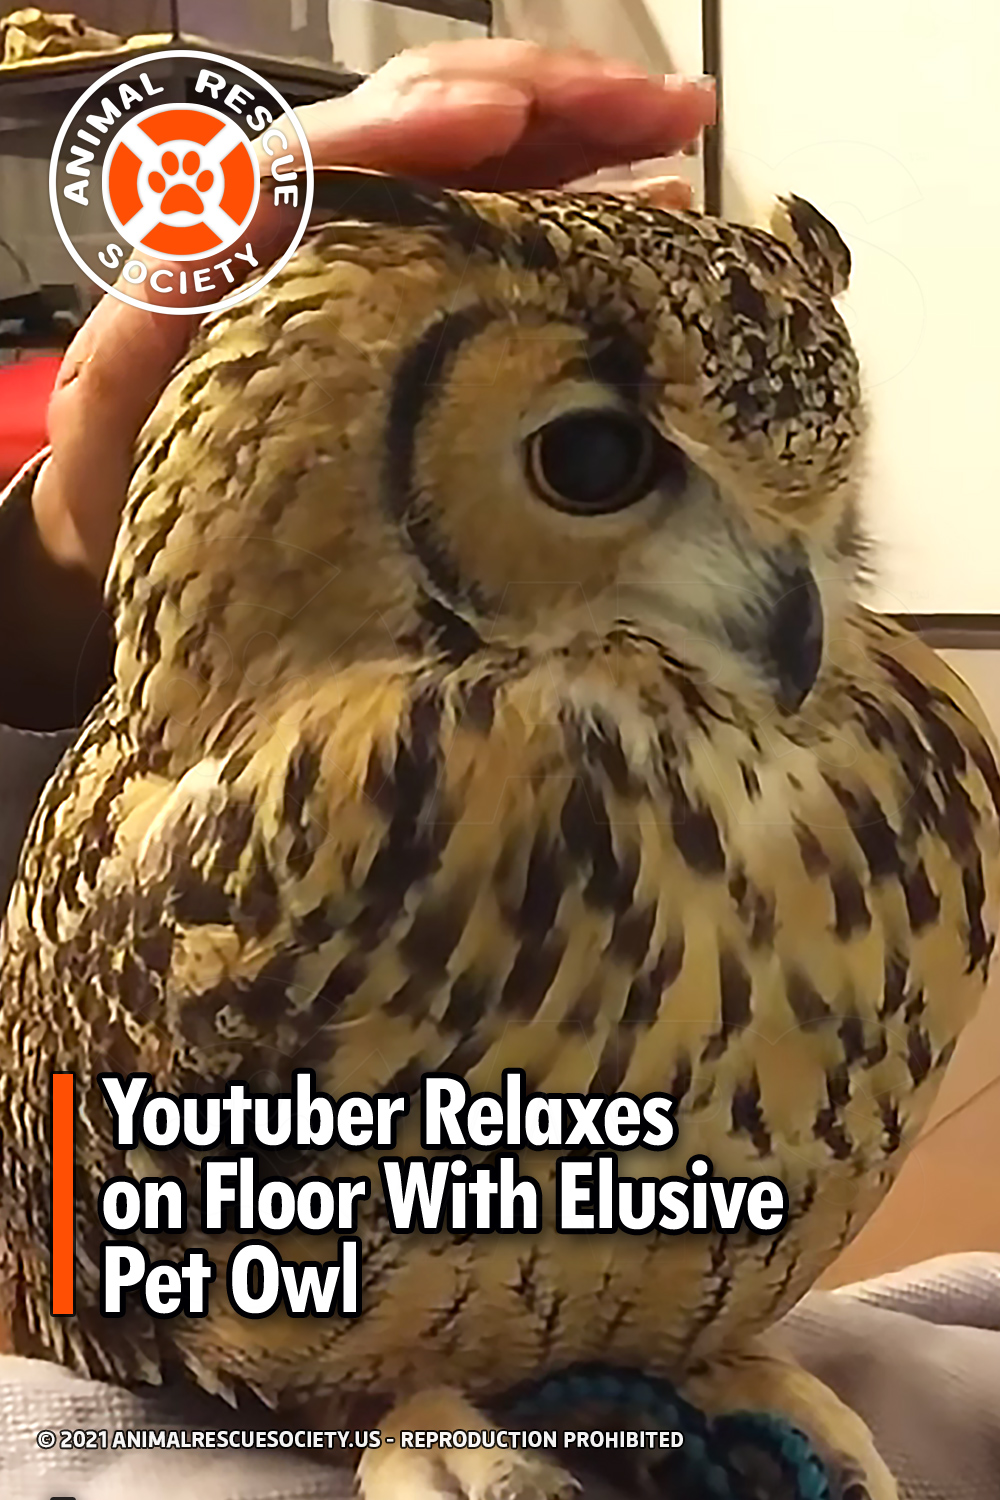 Youtuber Relaxes on Floor With Elusive Pet Owl